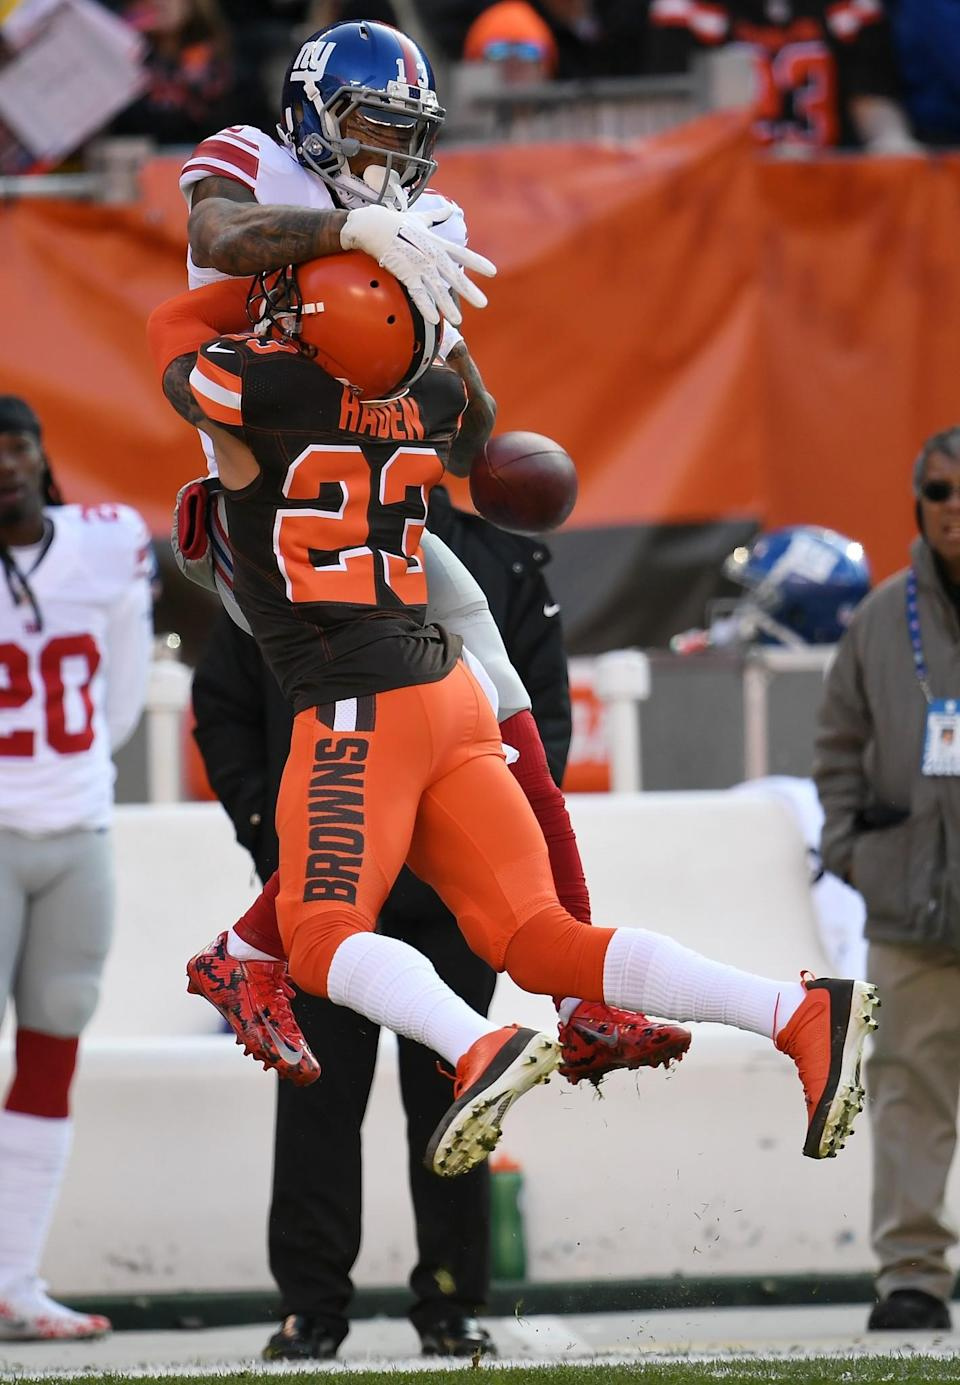 <p>Joe Haden #23 of the Cleveland Browns breaks up a pass intended for Odell Beckham #13 of the New York Giants during the first quarter at FirstEnergy Stadium on November 27, 2016 in Cleveland, Ohio. (Photo by Jason Miller/Getty Images) </p>